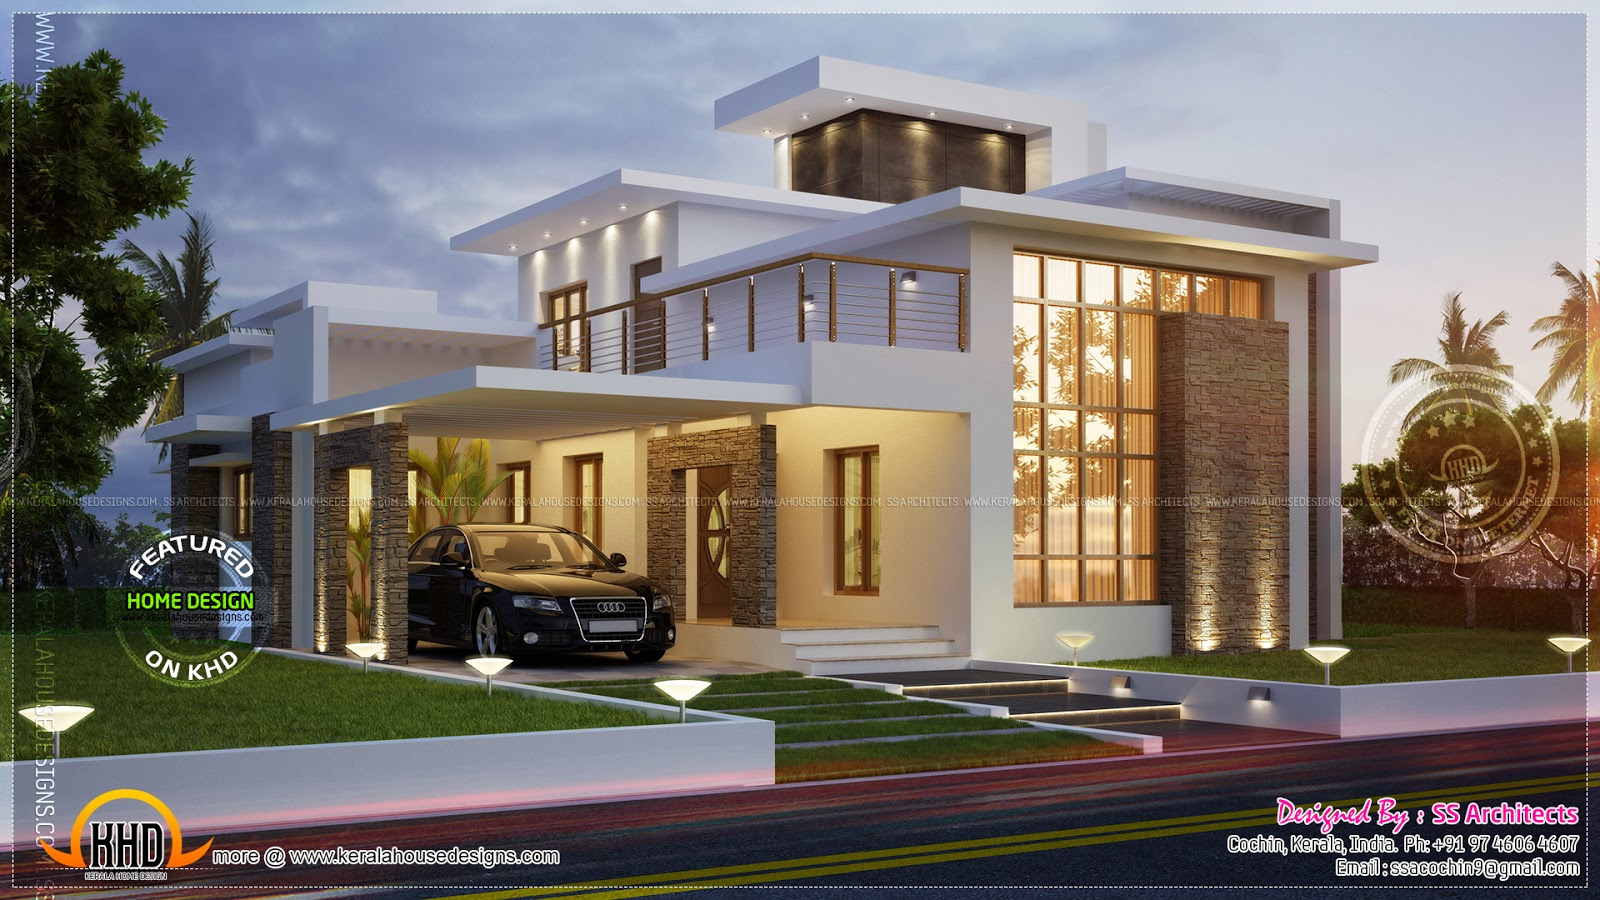 House elevations on pinterest kerala ottawa and modern Contemporary house blueprints